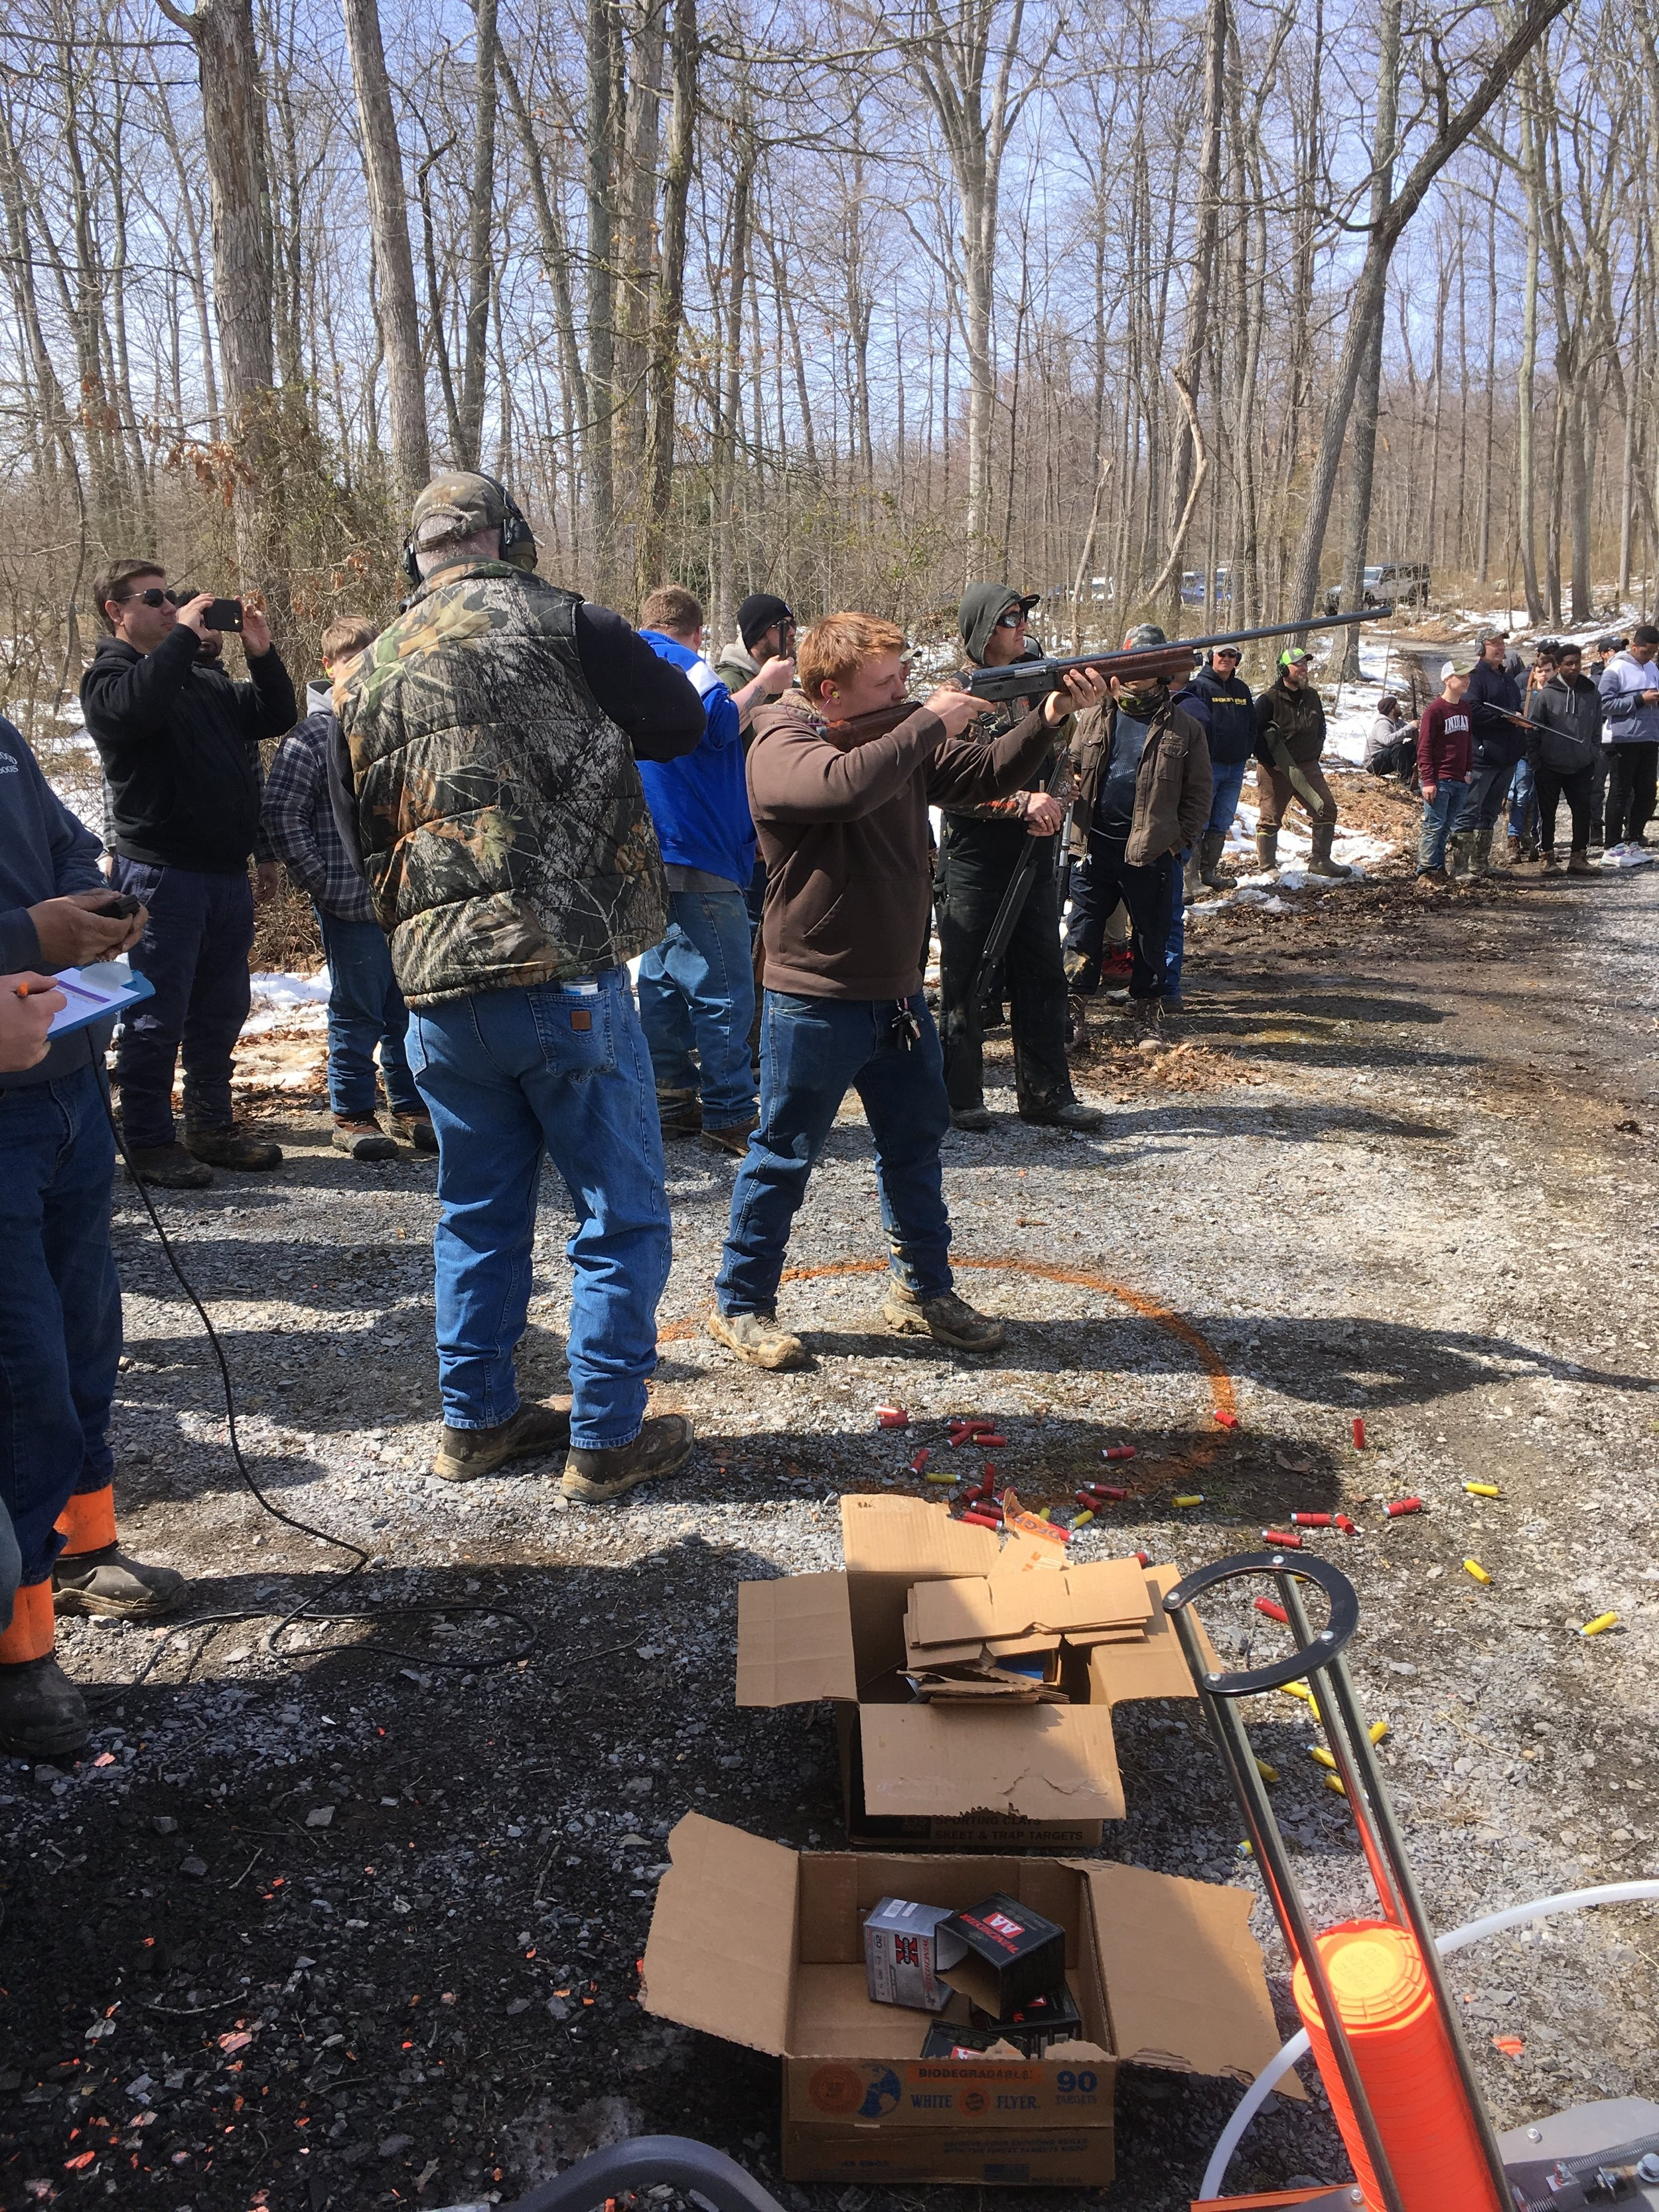 Heartwood_outdoors_event.JPG